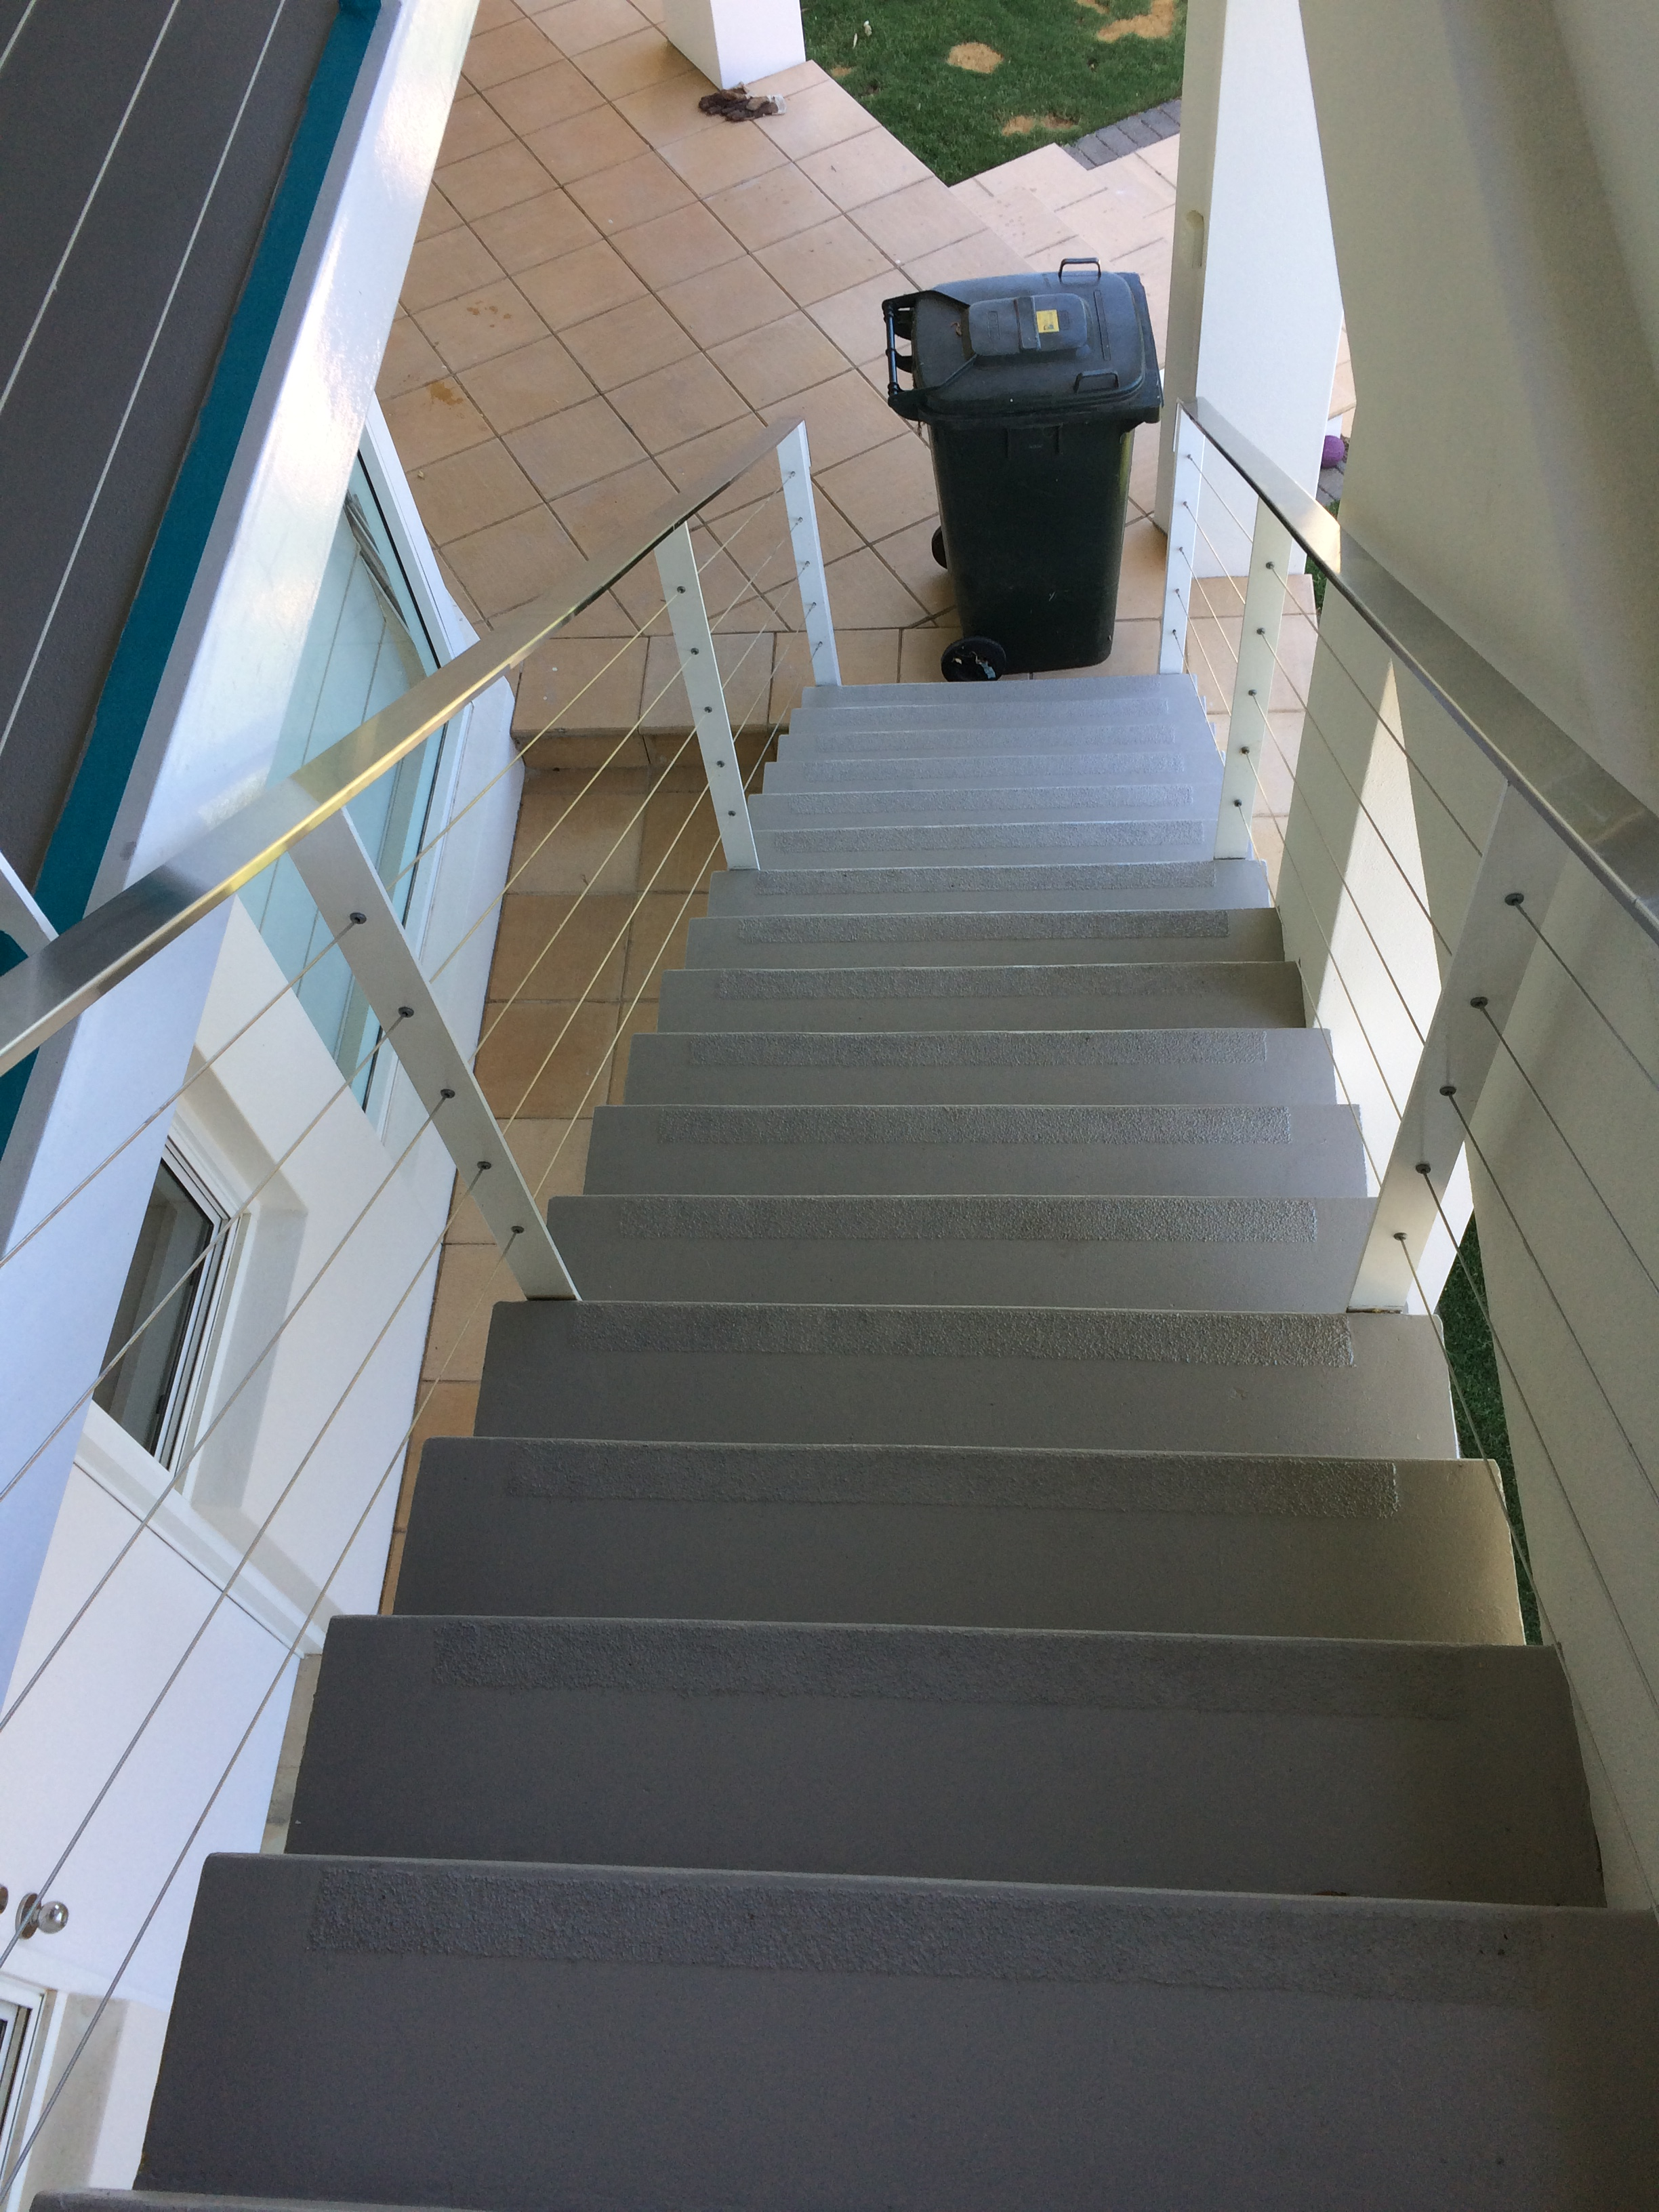 External Stair Non-Slip Epoxy Application